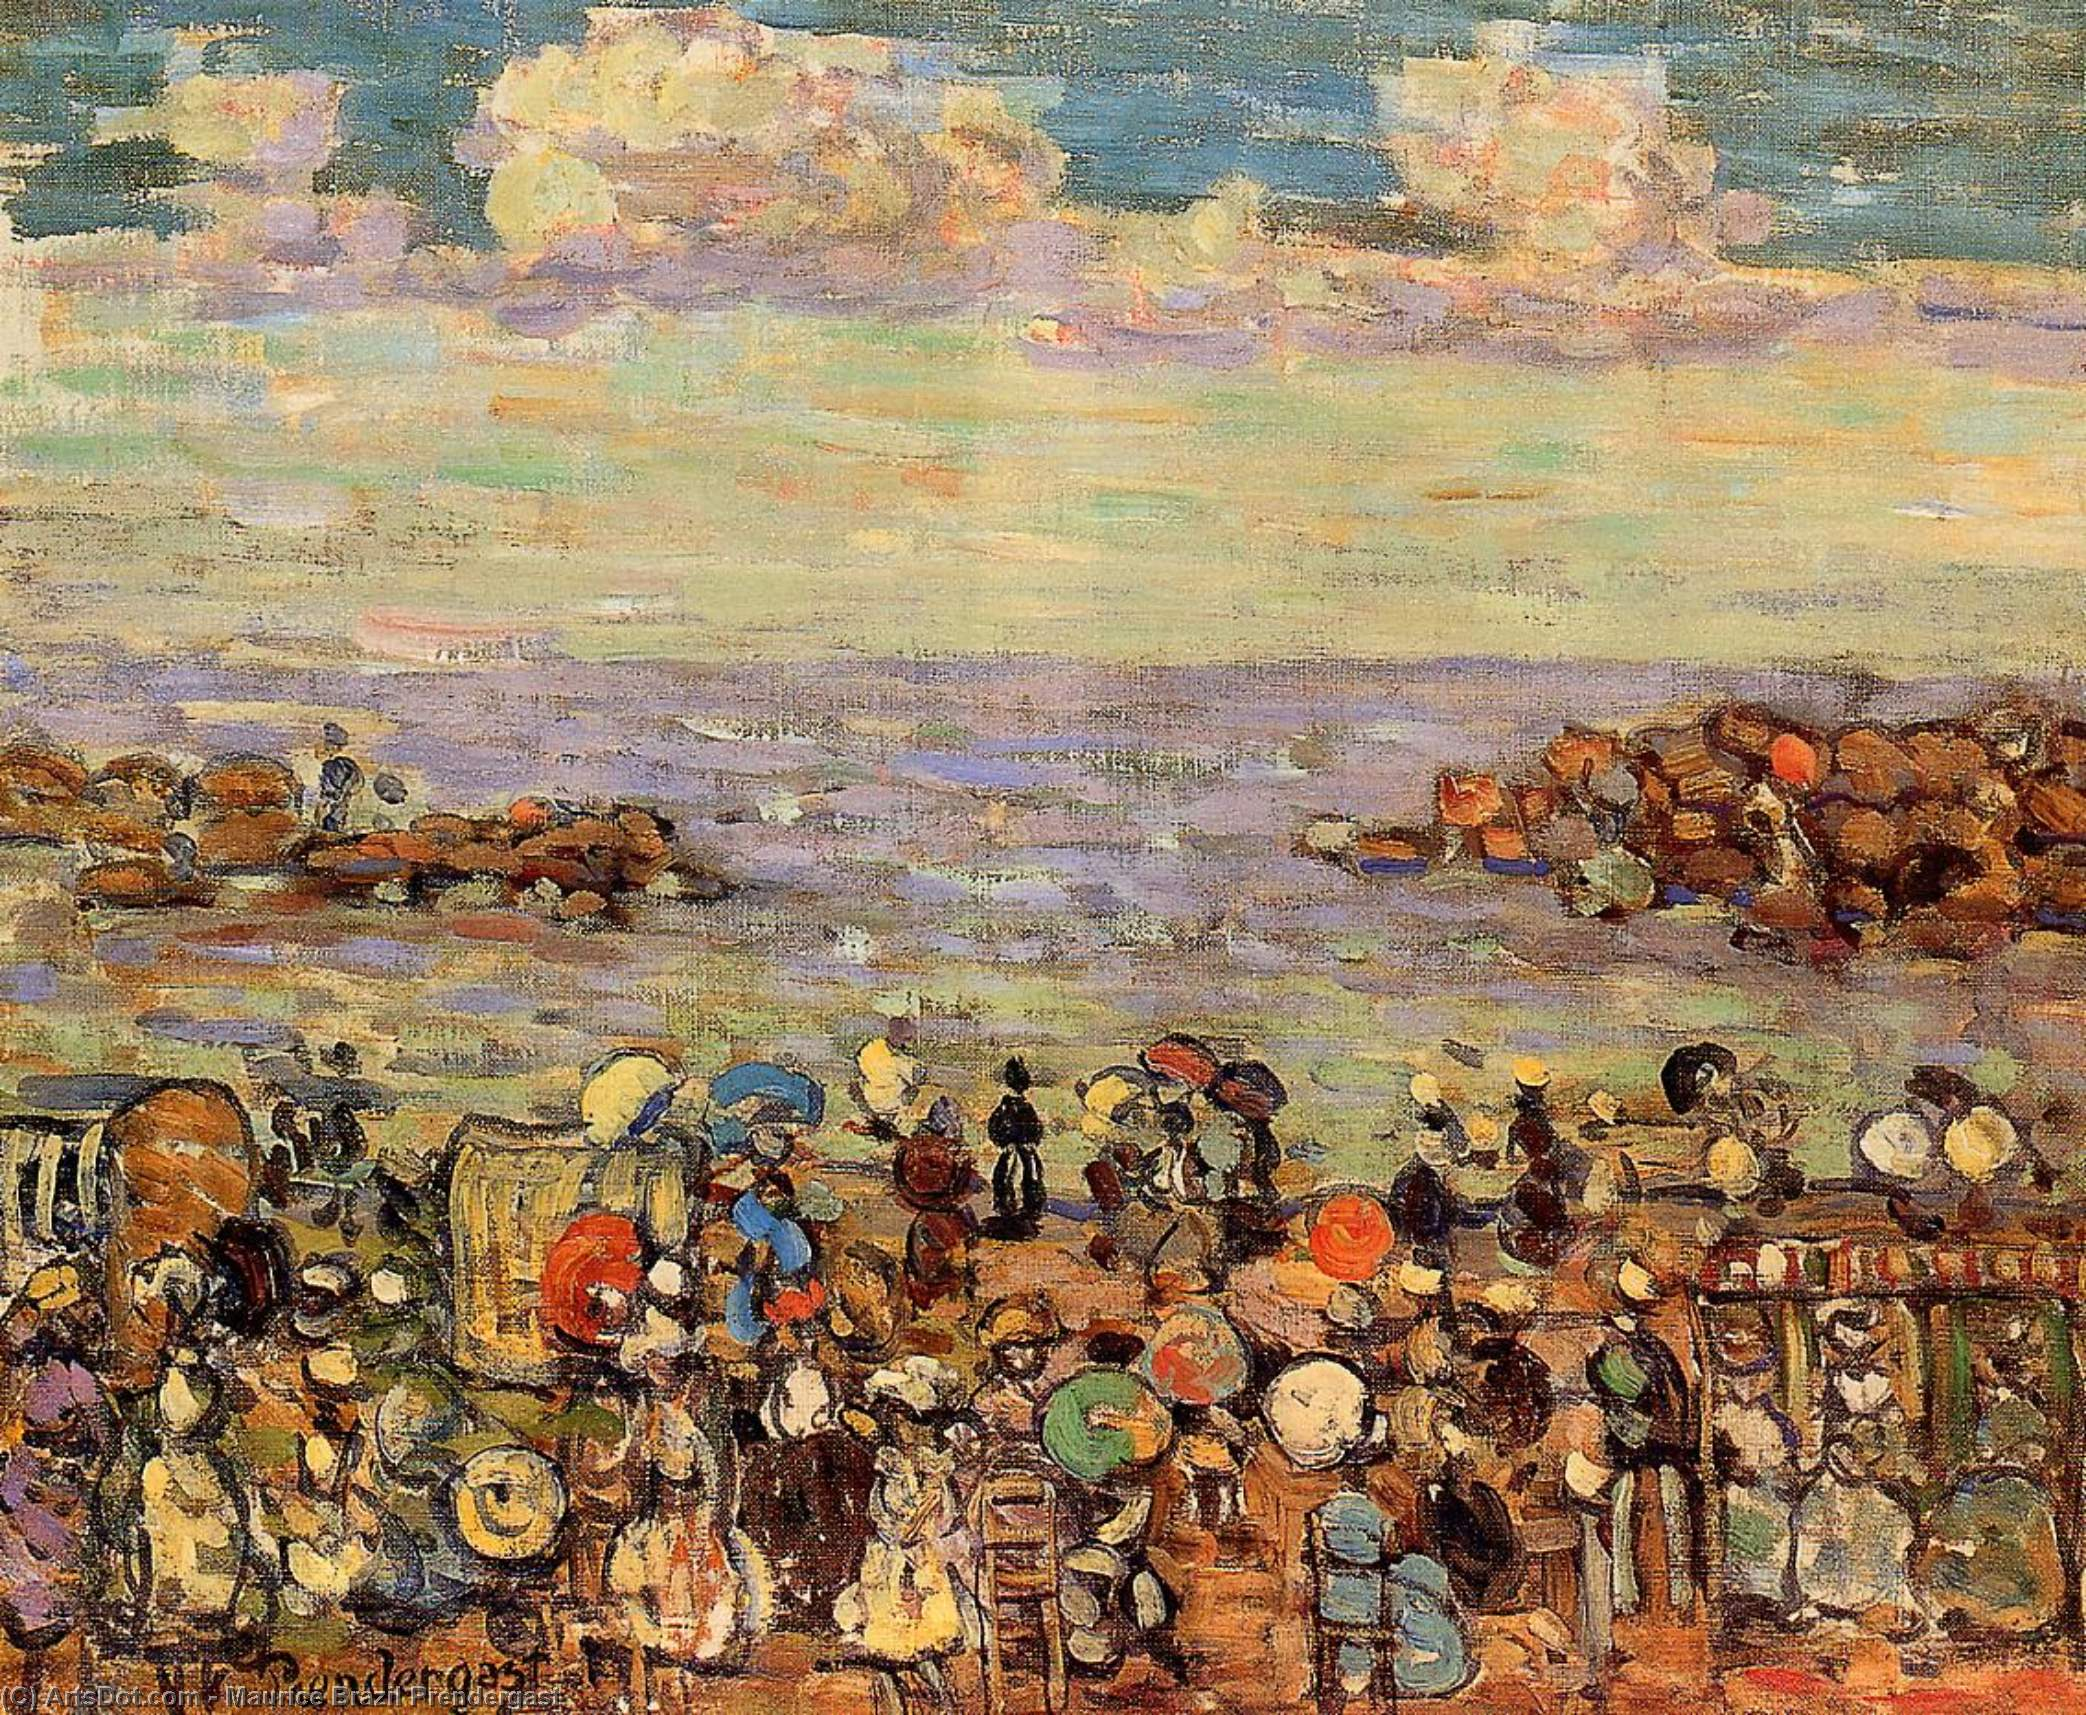 Wikioo.org - The Encyclopedia of Fine Arts - Painting, Artwork by Maurice Brazil Prendergast - Beach at St. Malo